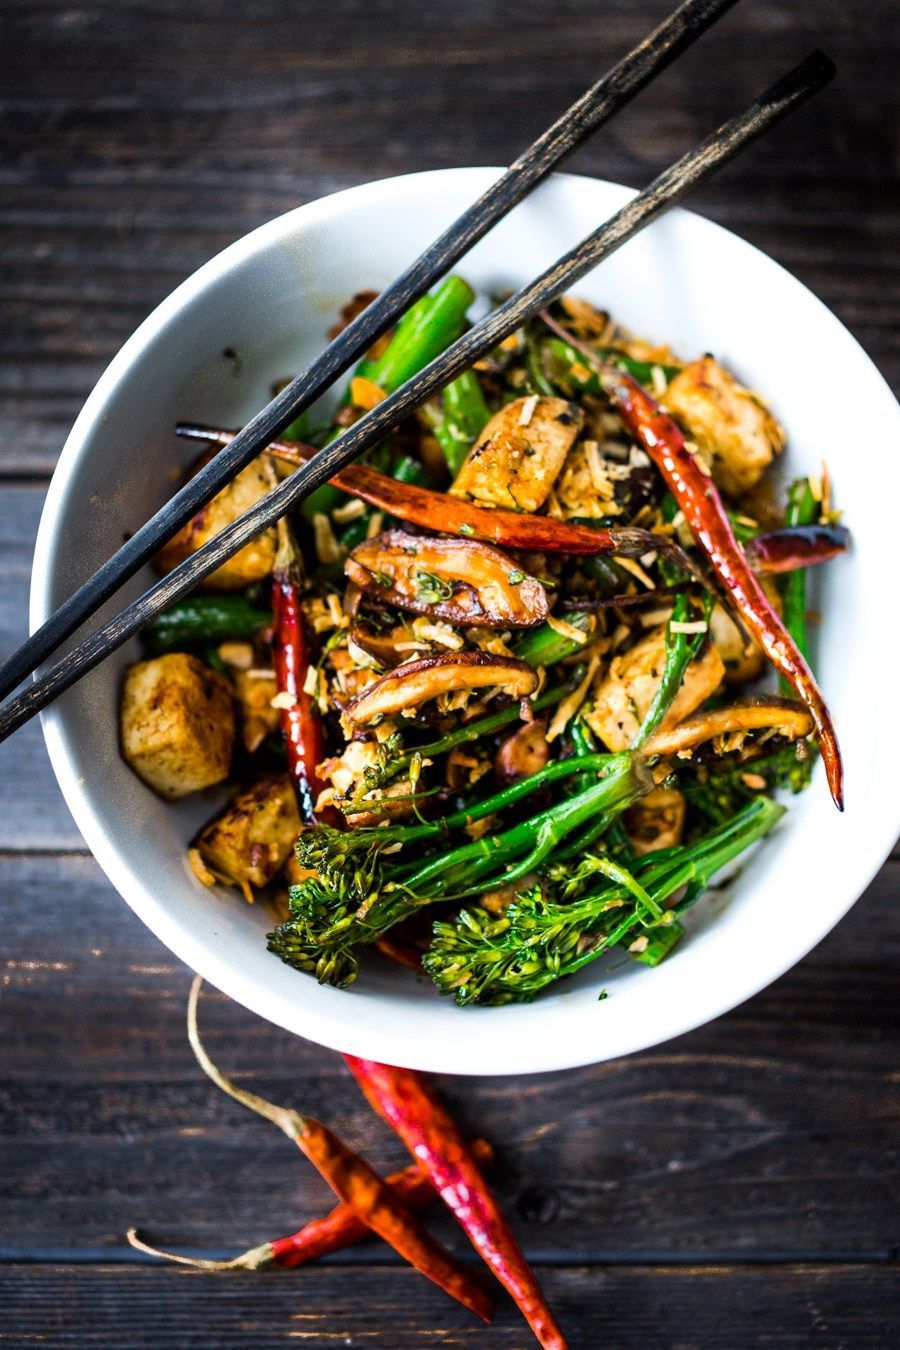 Tofu Stir Fry With Broccolini And Mushrooms Recipe Tofu Stir Fry Delicious Tofu Clean Eating Recipes